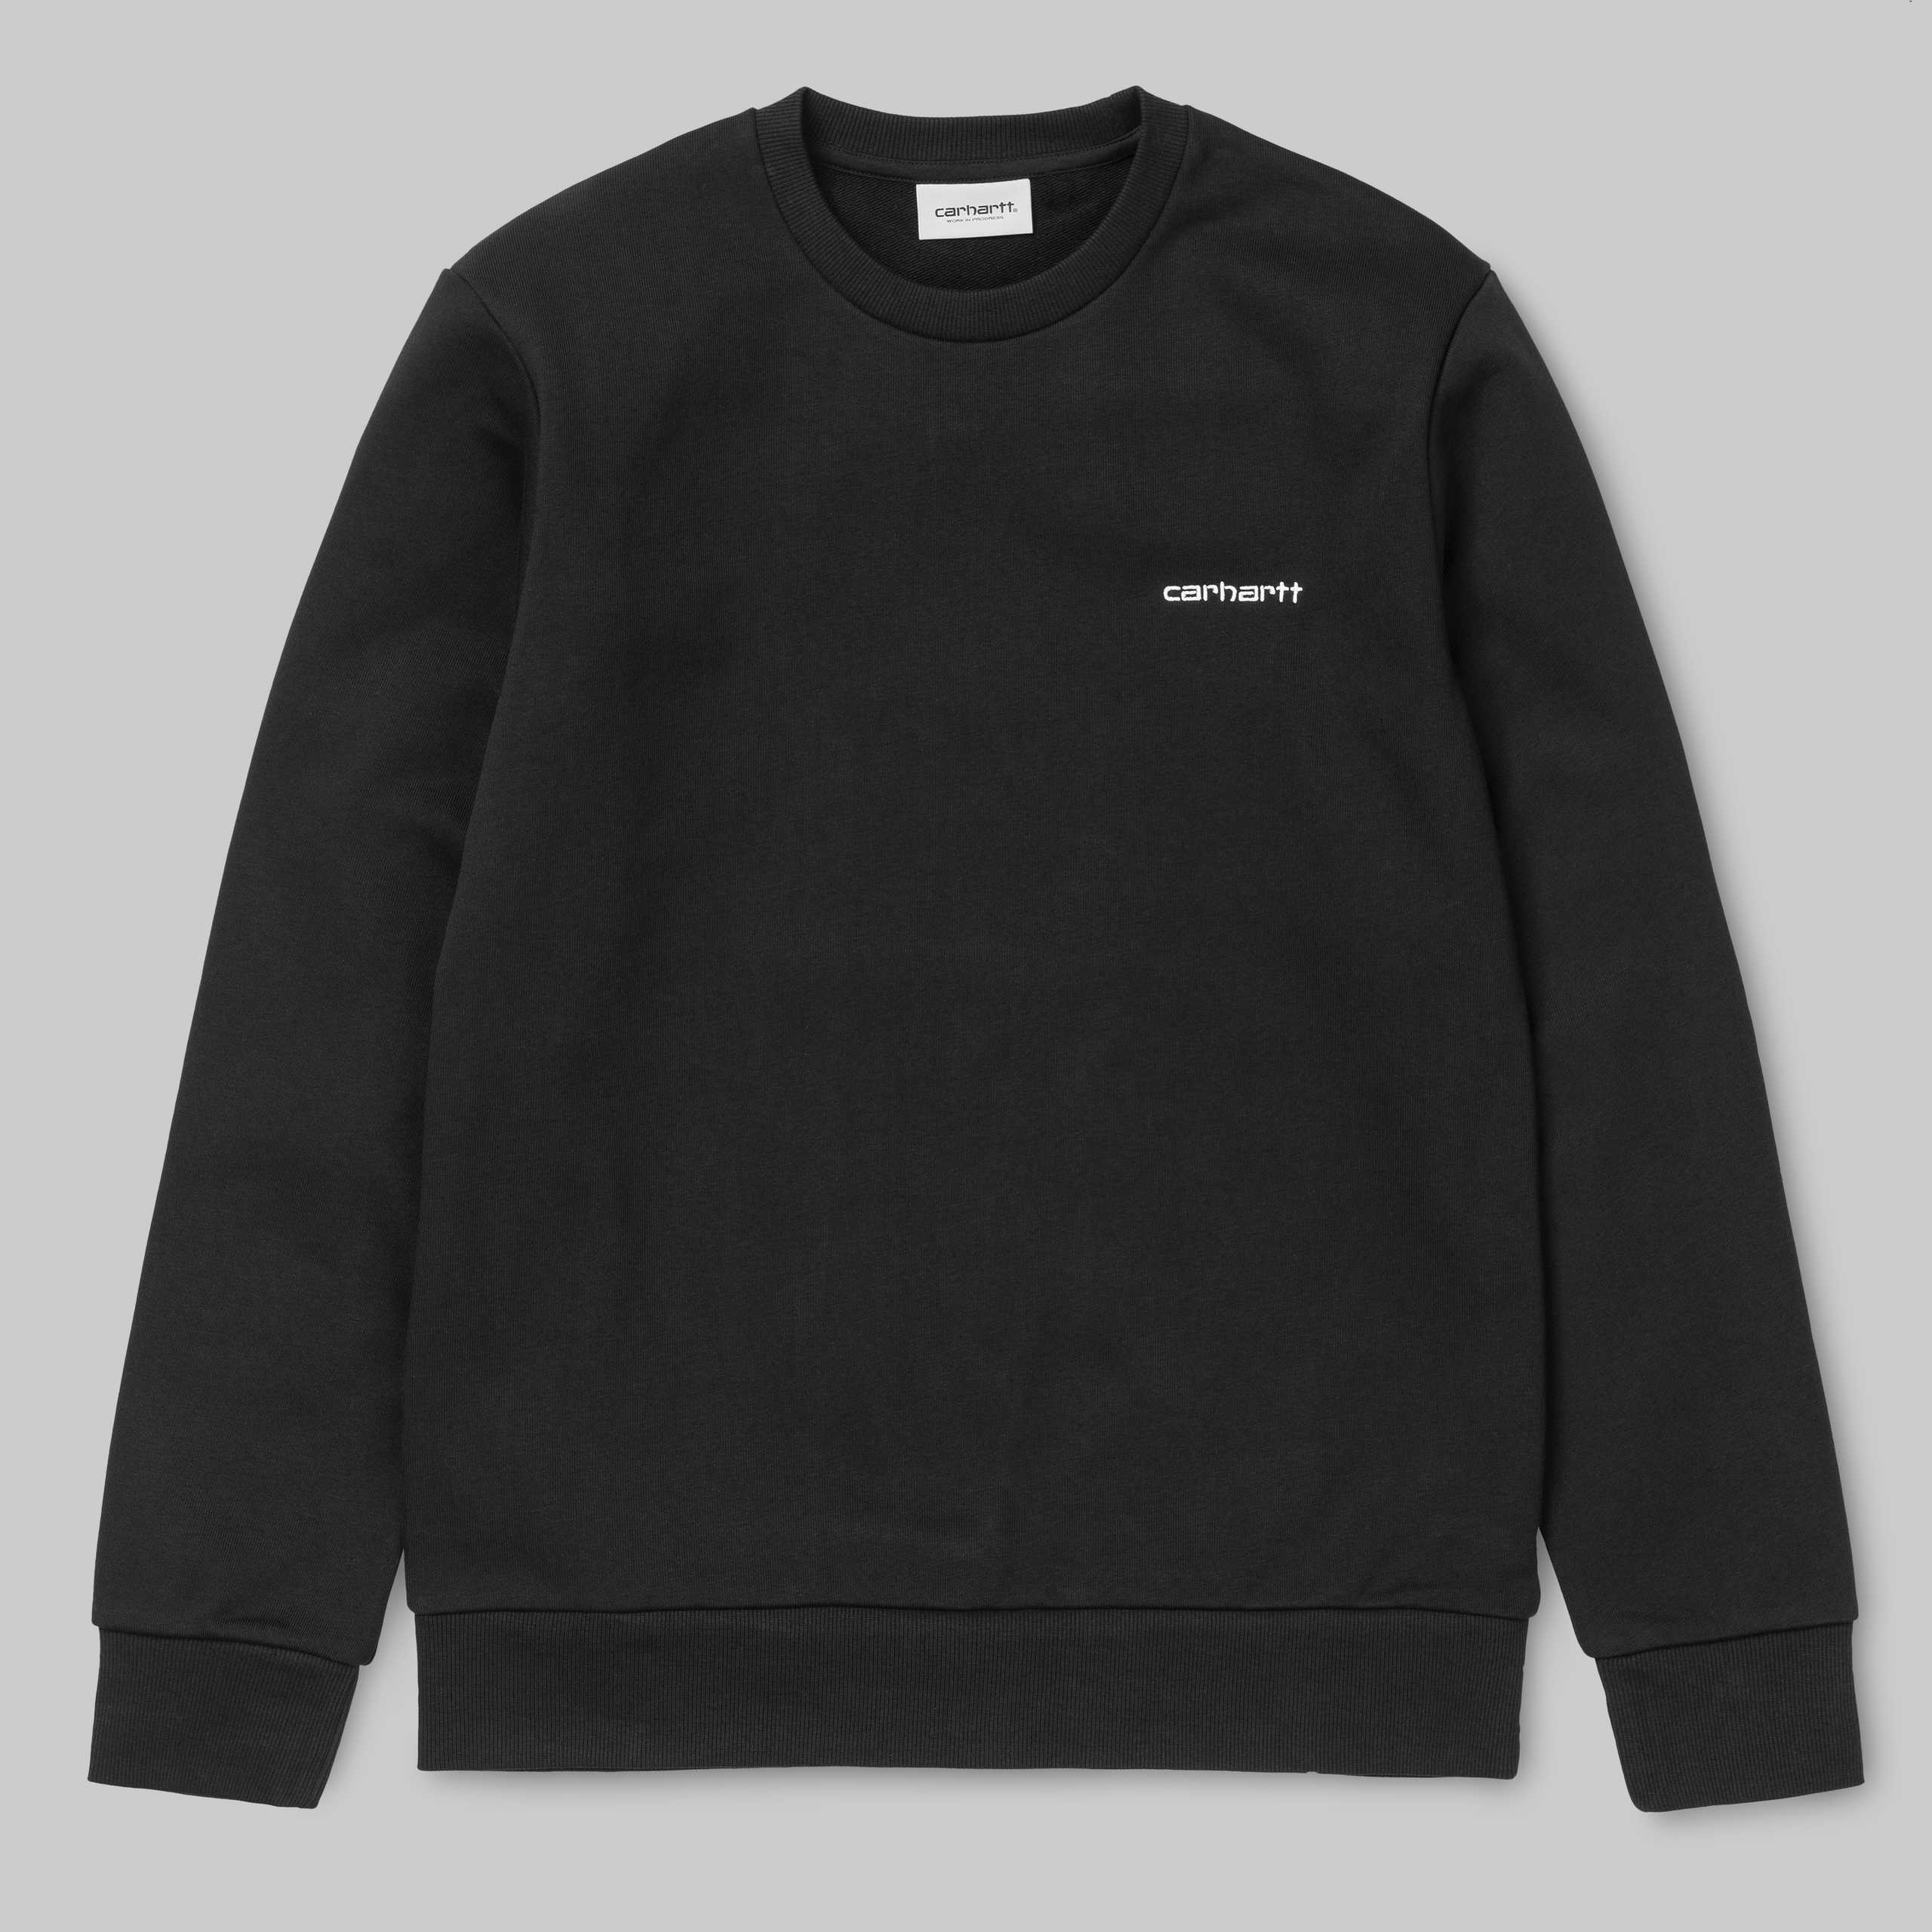 script-embroidery-sweatshirt-black-white-842